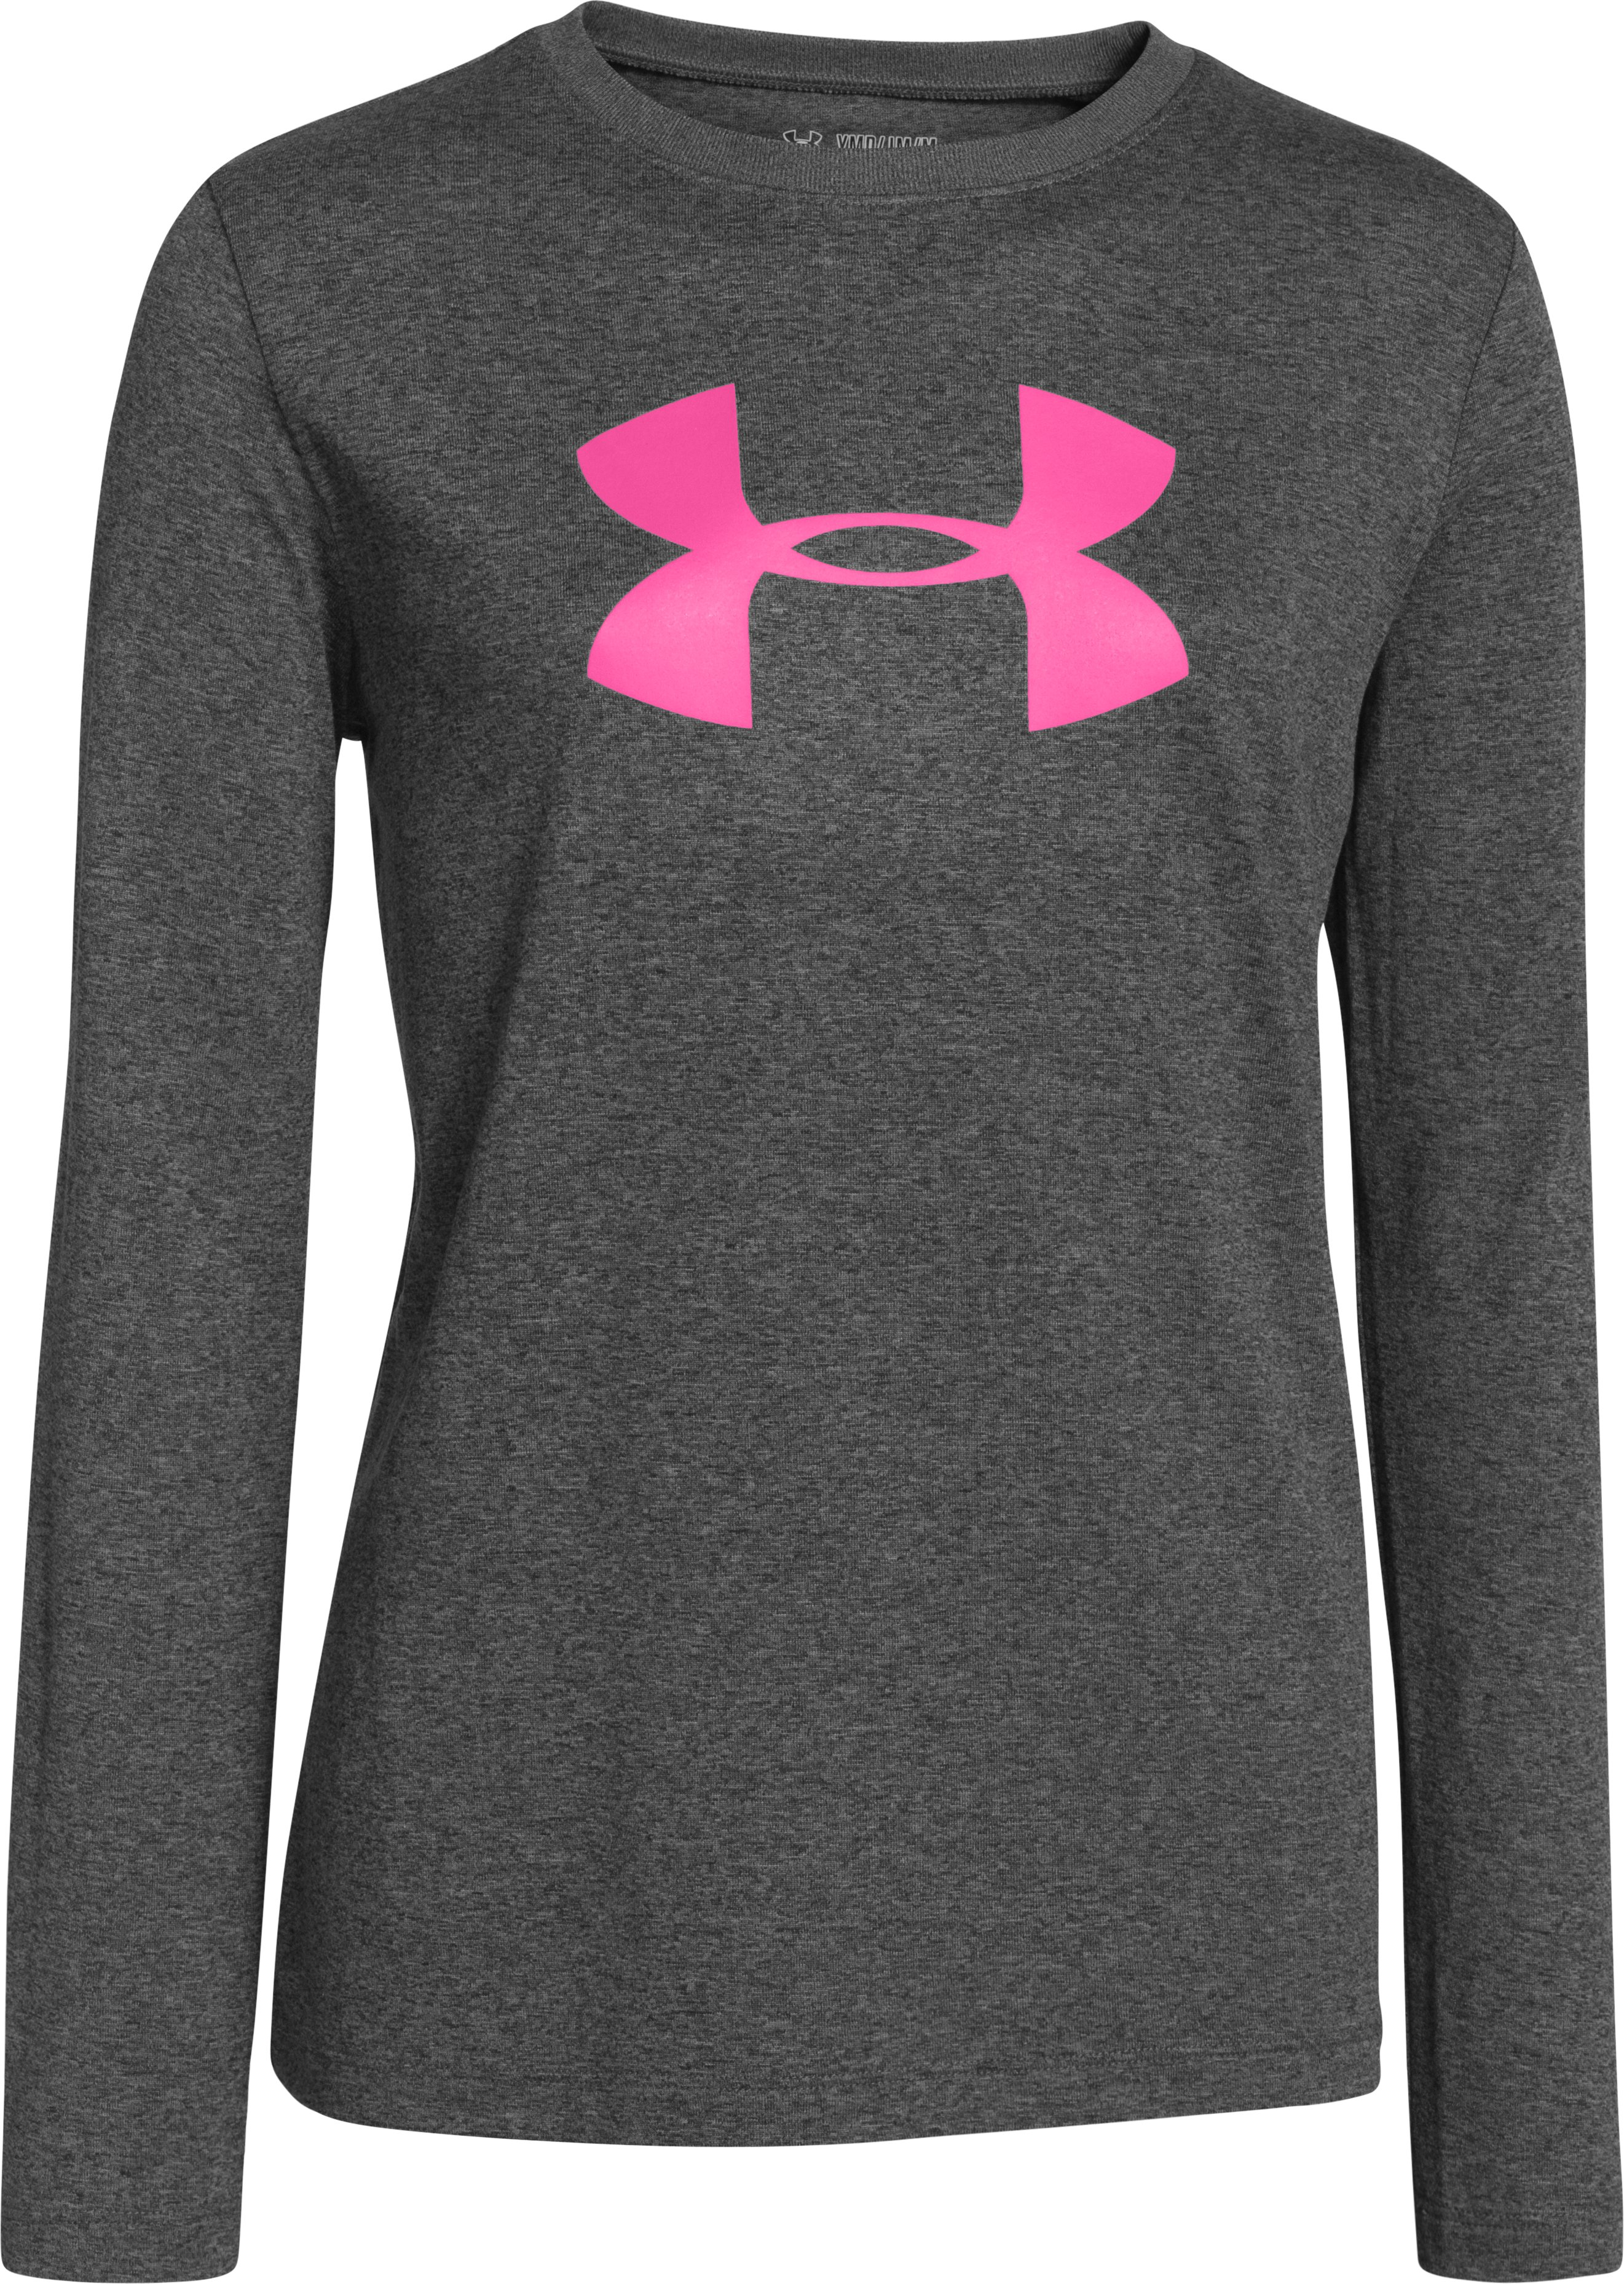 Girls' UA Tech™ Big Logo Long Sleeve, Carbon Heather, zoomed image